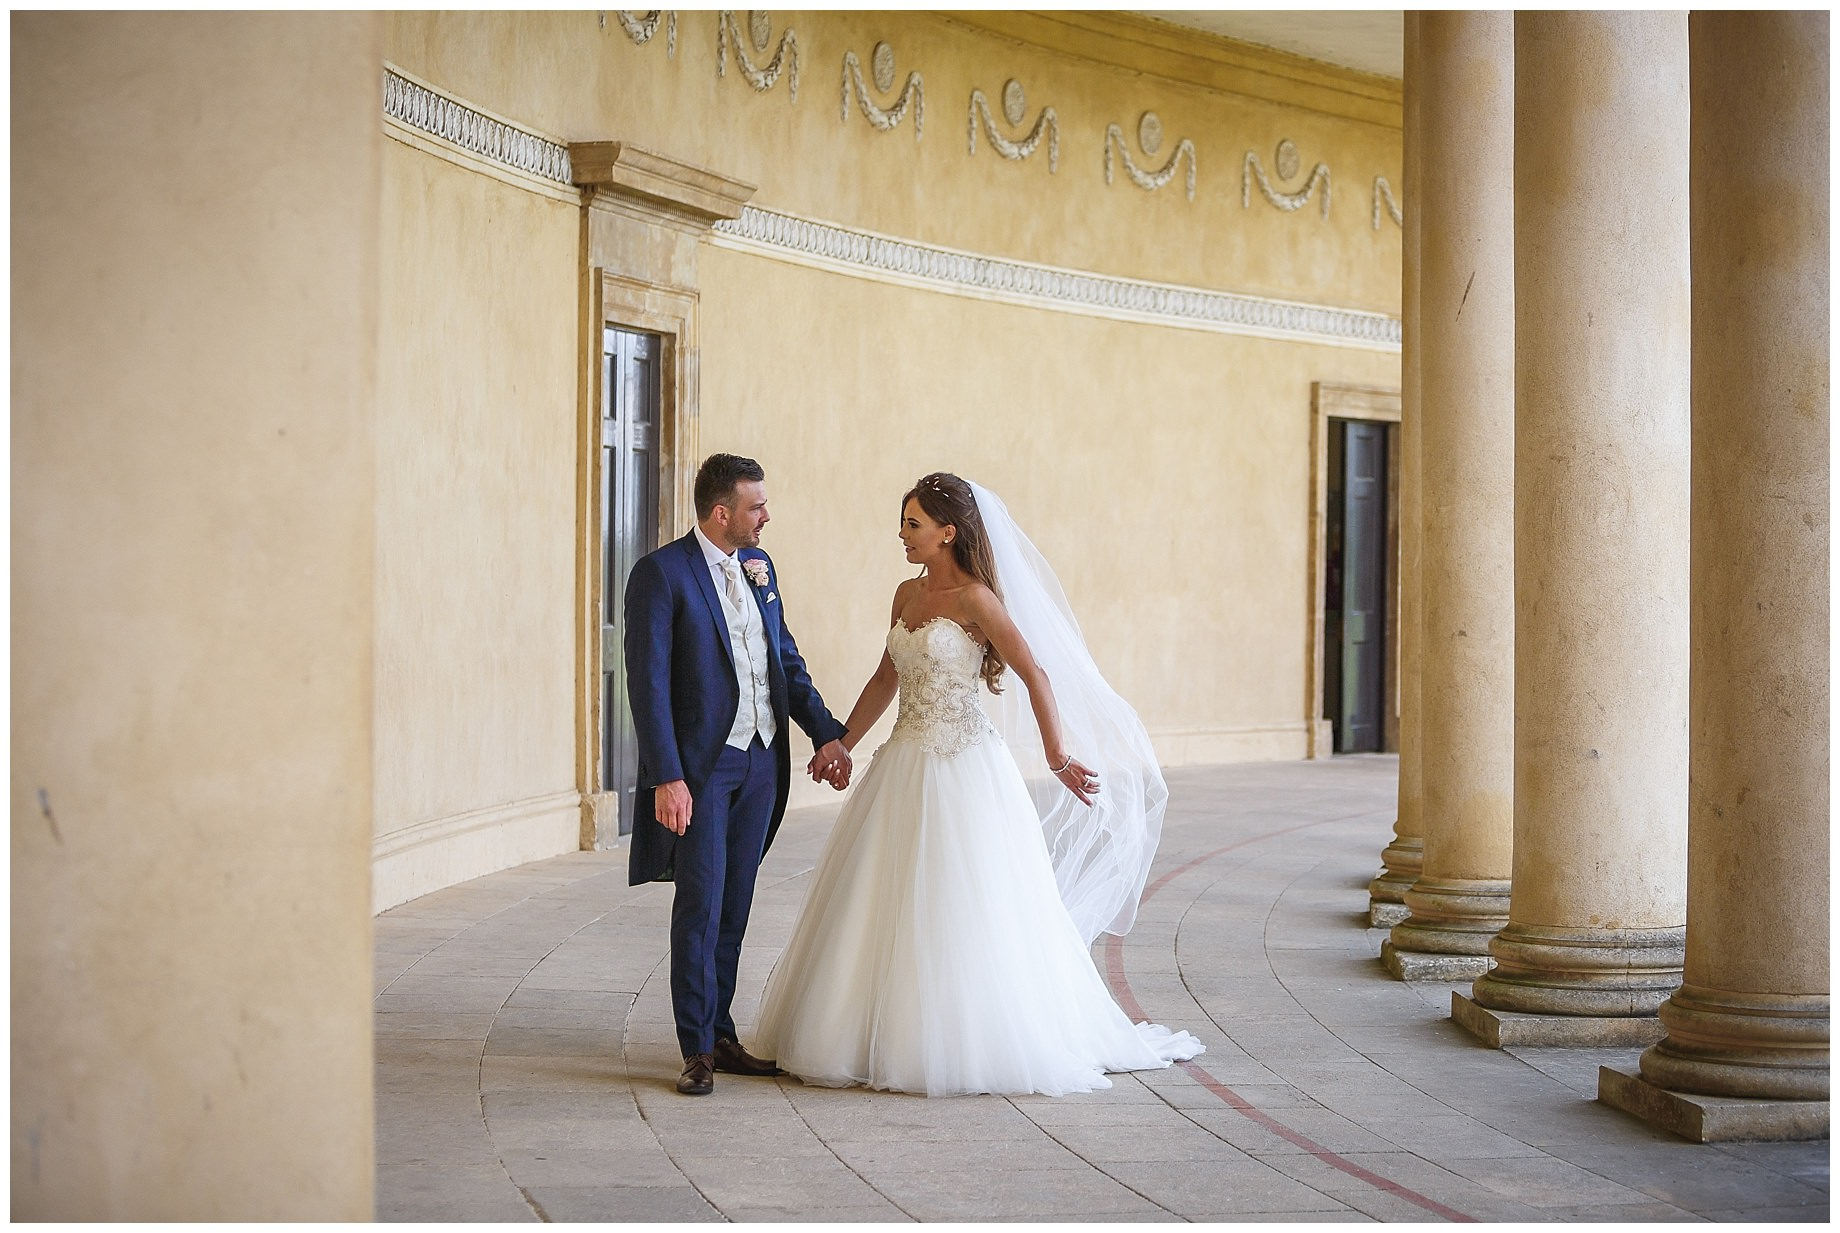 Stowe House Wedding images